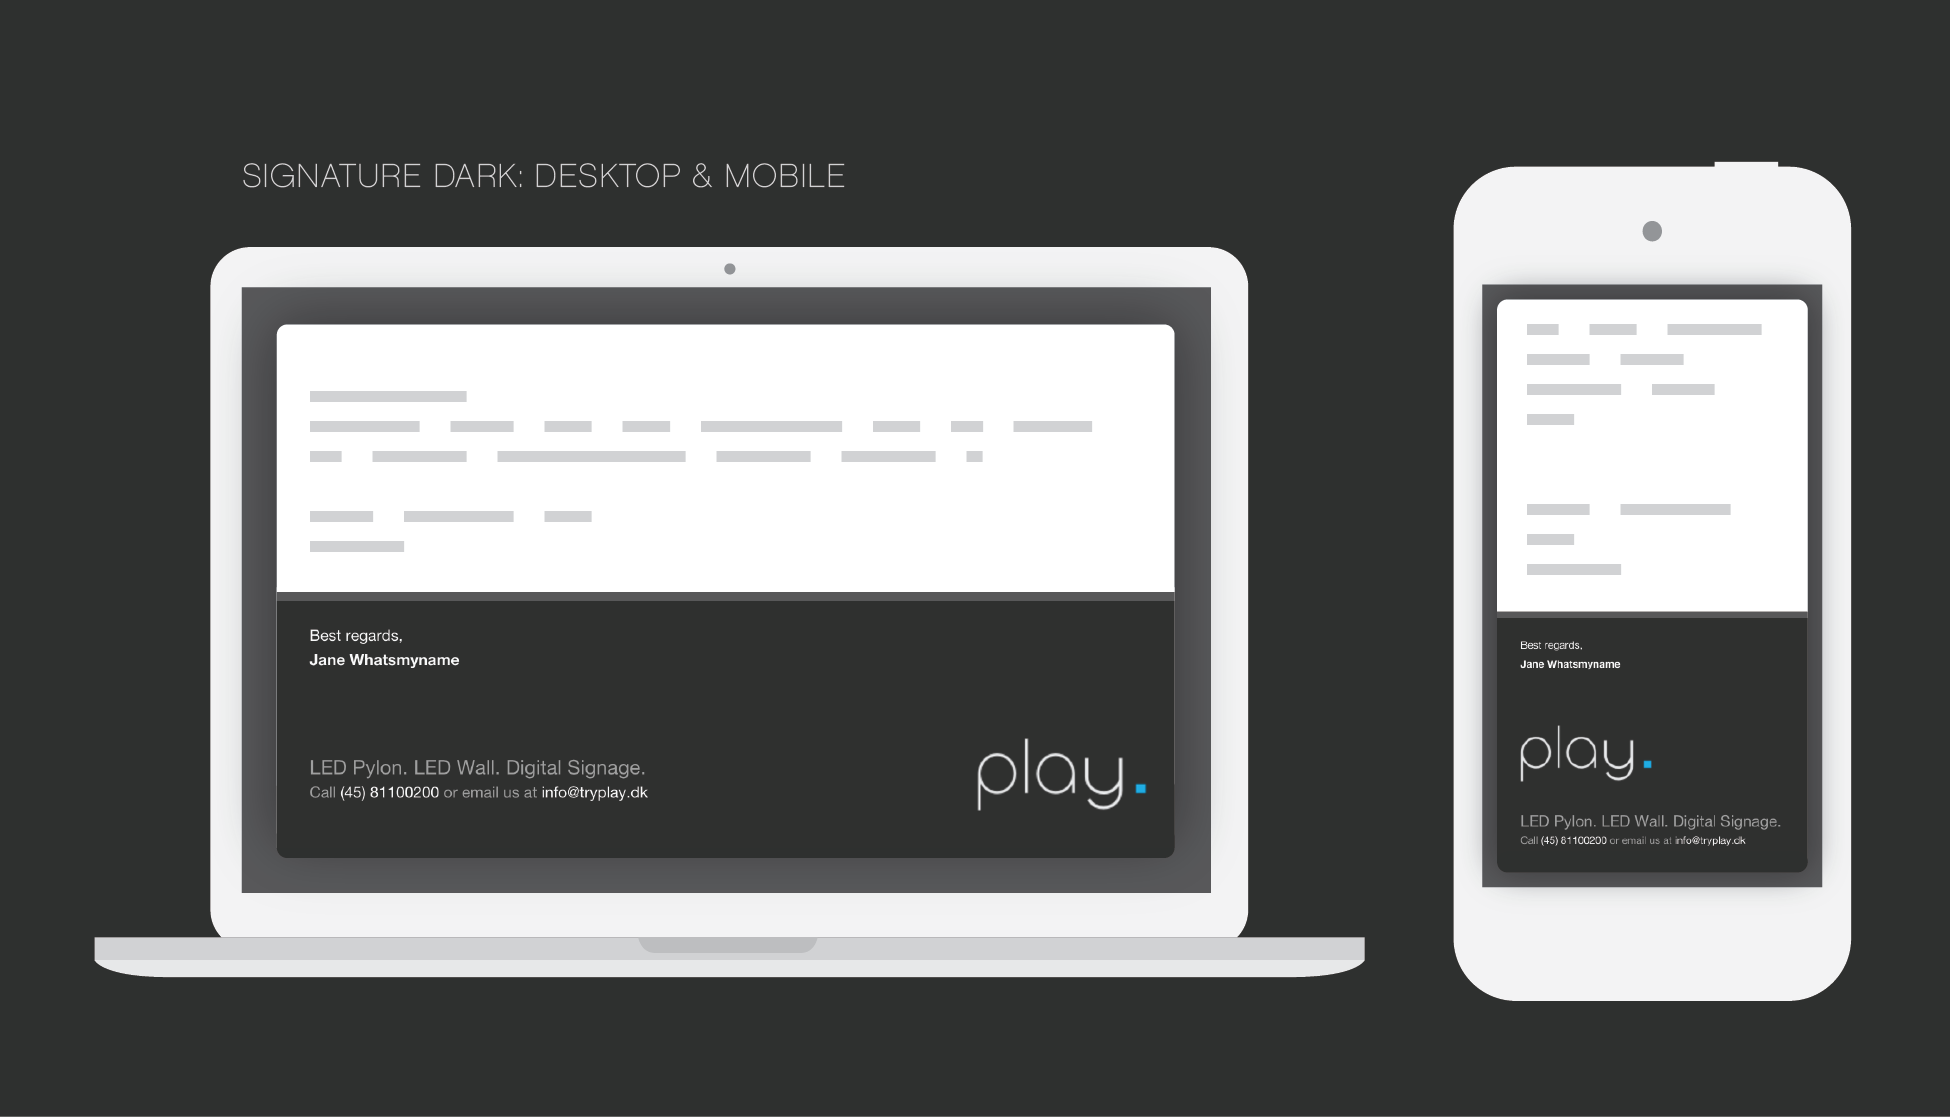 responsive emails-02 | Signature design | Pinterest | Responsive ...